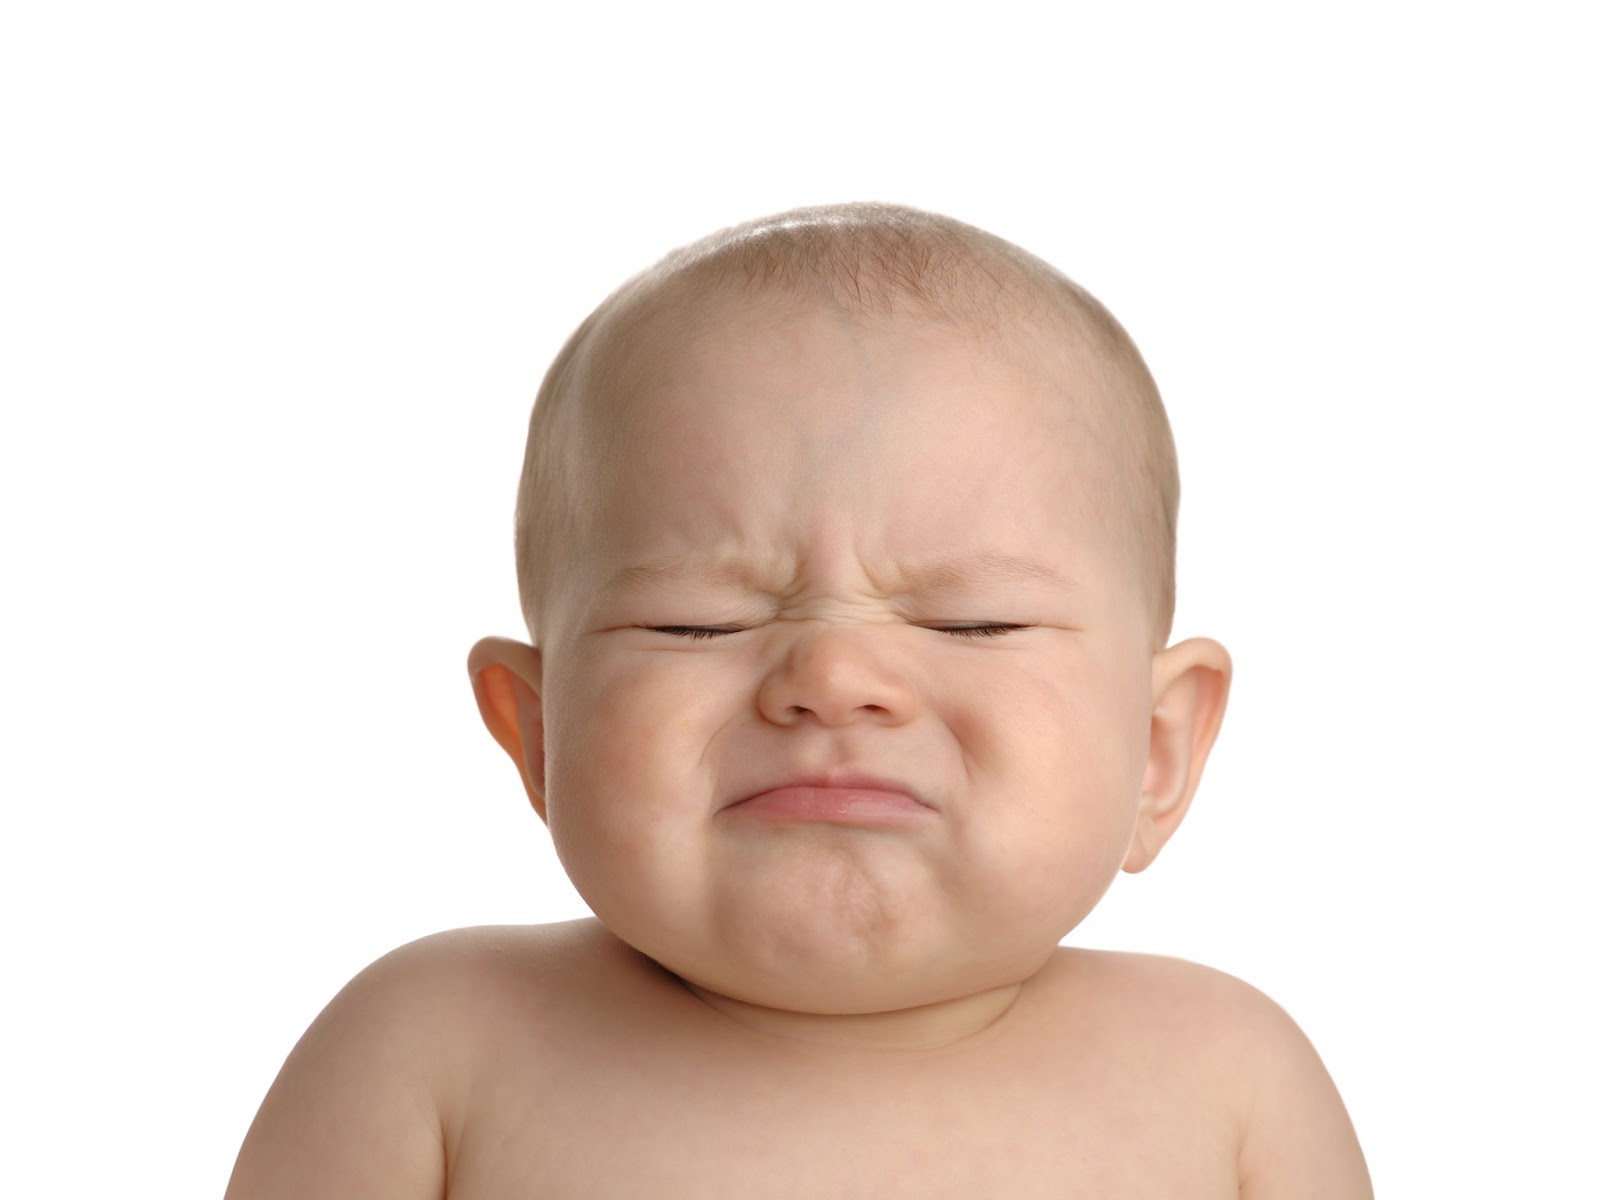 Crying Cute Baby Image Collections - BabynamesCute Crying Baby - crying-cute-baby-image-collections%2B(14)